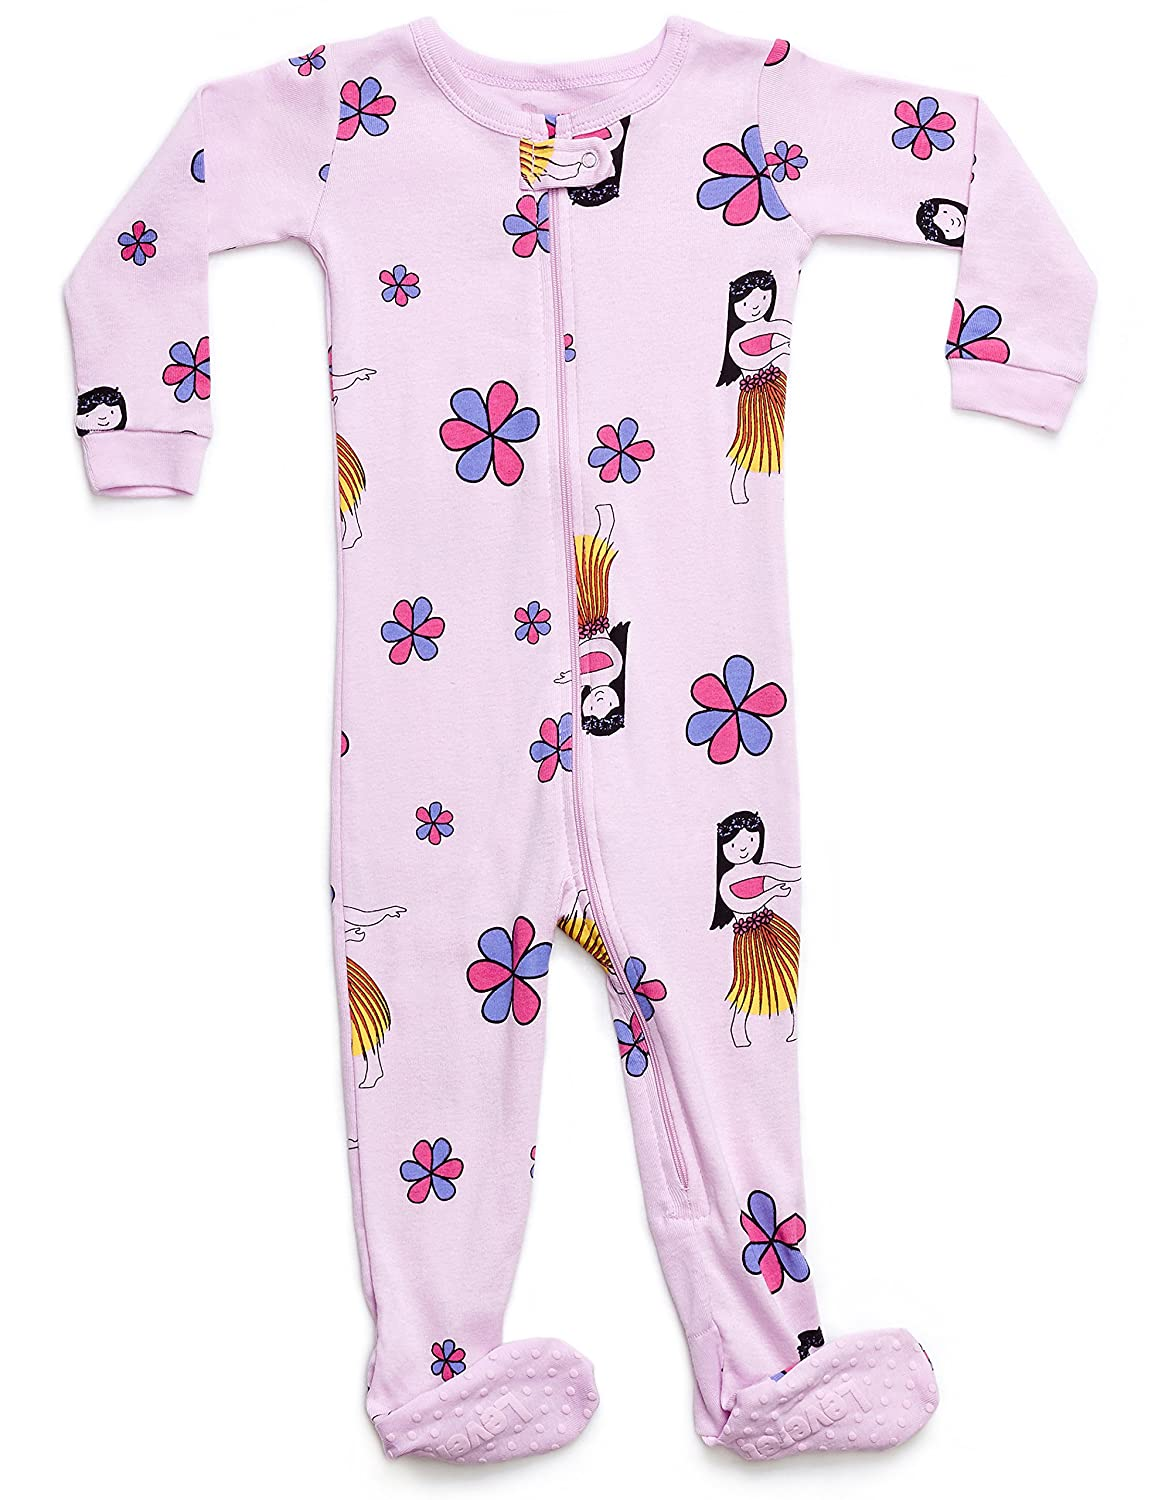 Leveret Baby Boys Girls Footed Pajamas Sleeper 100% Organic Cotton Kids & Toddler Pjs Sleepwear (6 Months-5 Toddler)